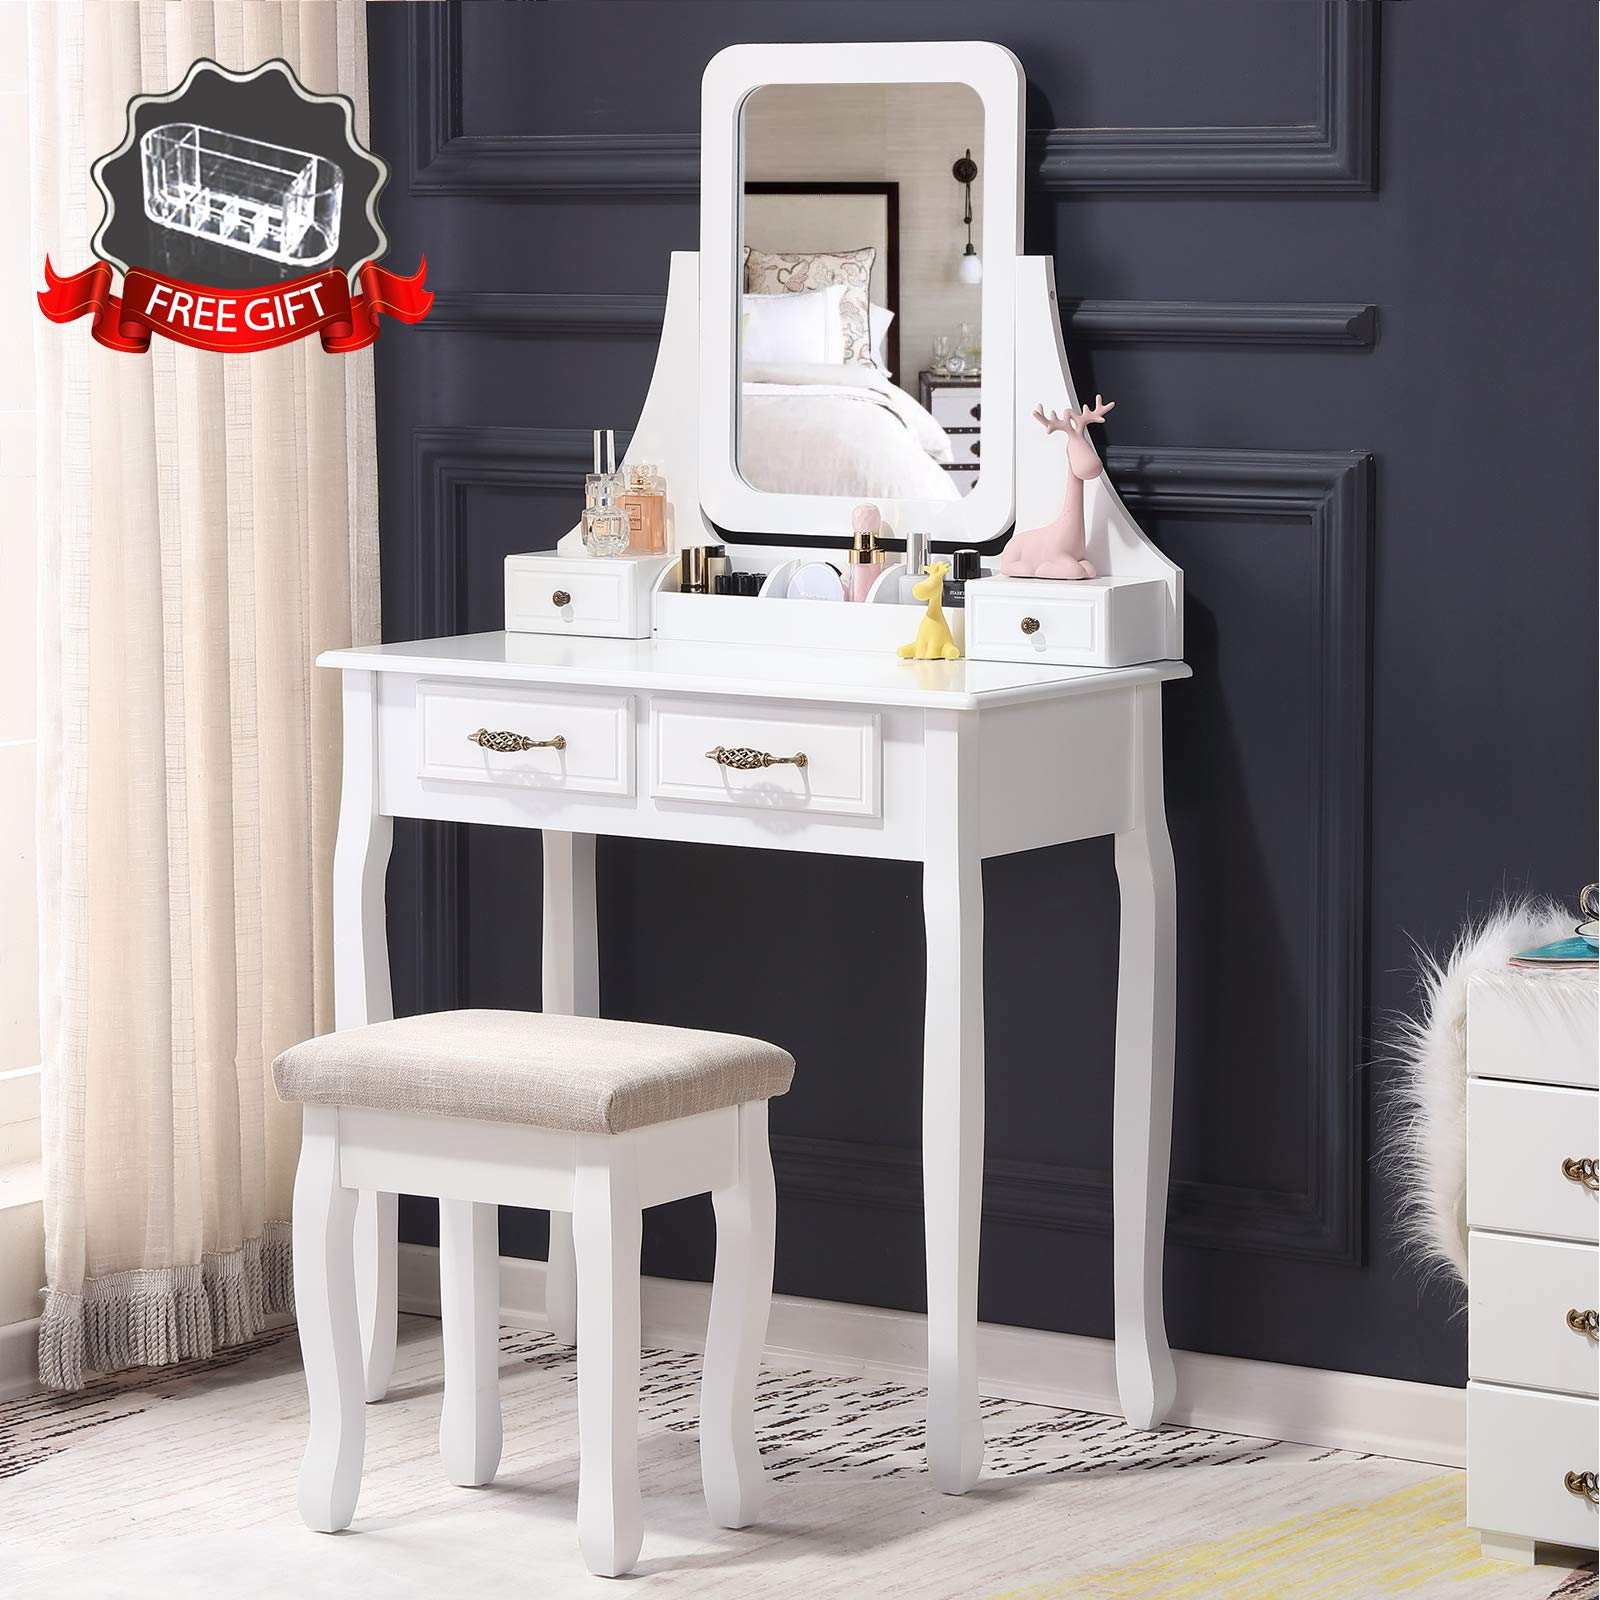 Unihome Vanity Table Vanity Set with Mirror&Cushioned Stool Antique Style Makeup Desk w/Bench Dressing Table 4 Drawers with Makeup Organizer (White)